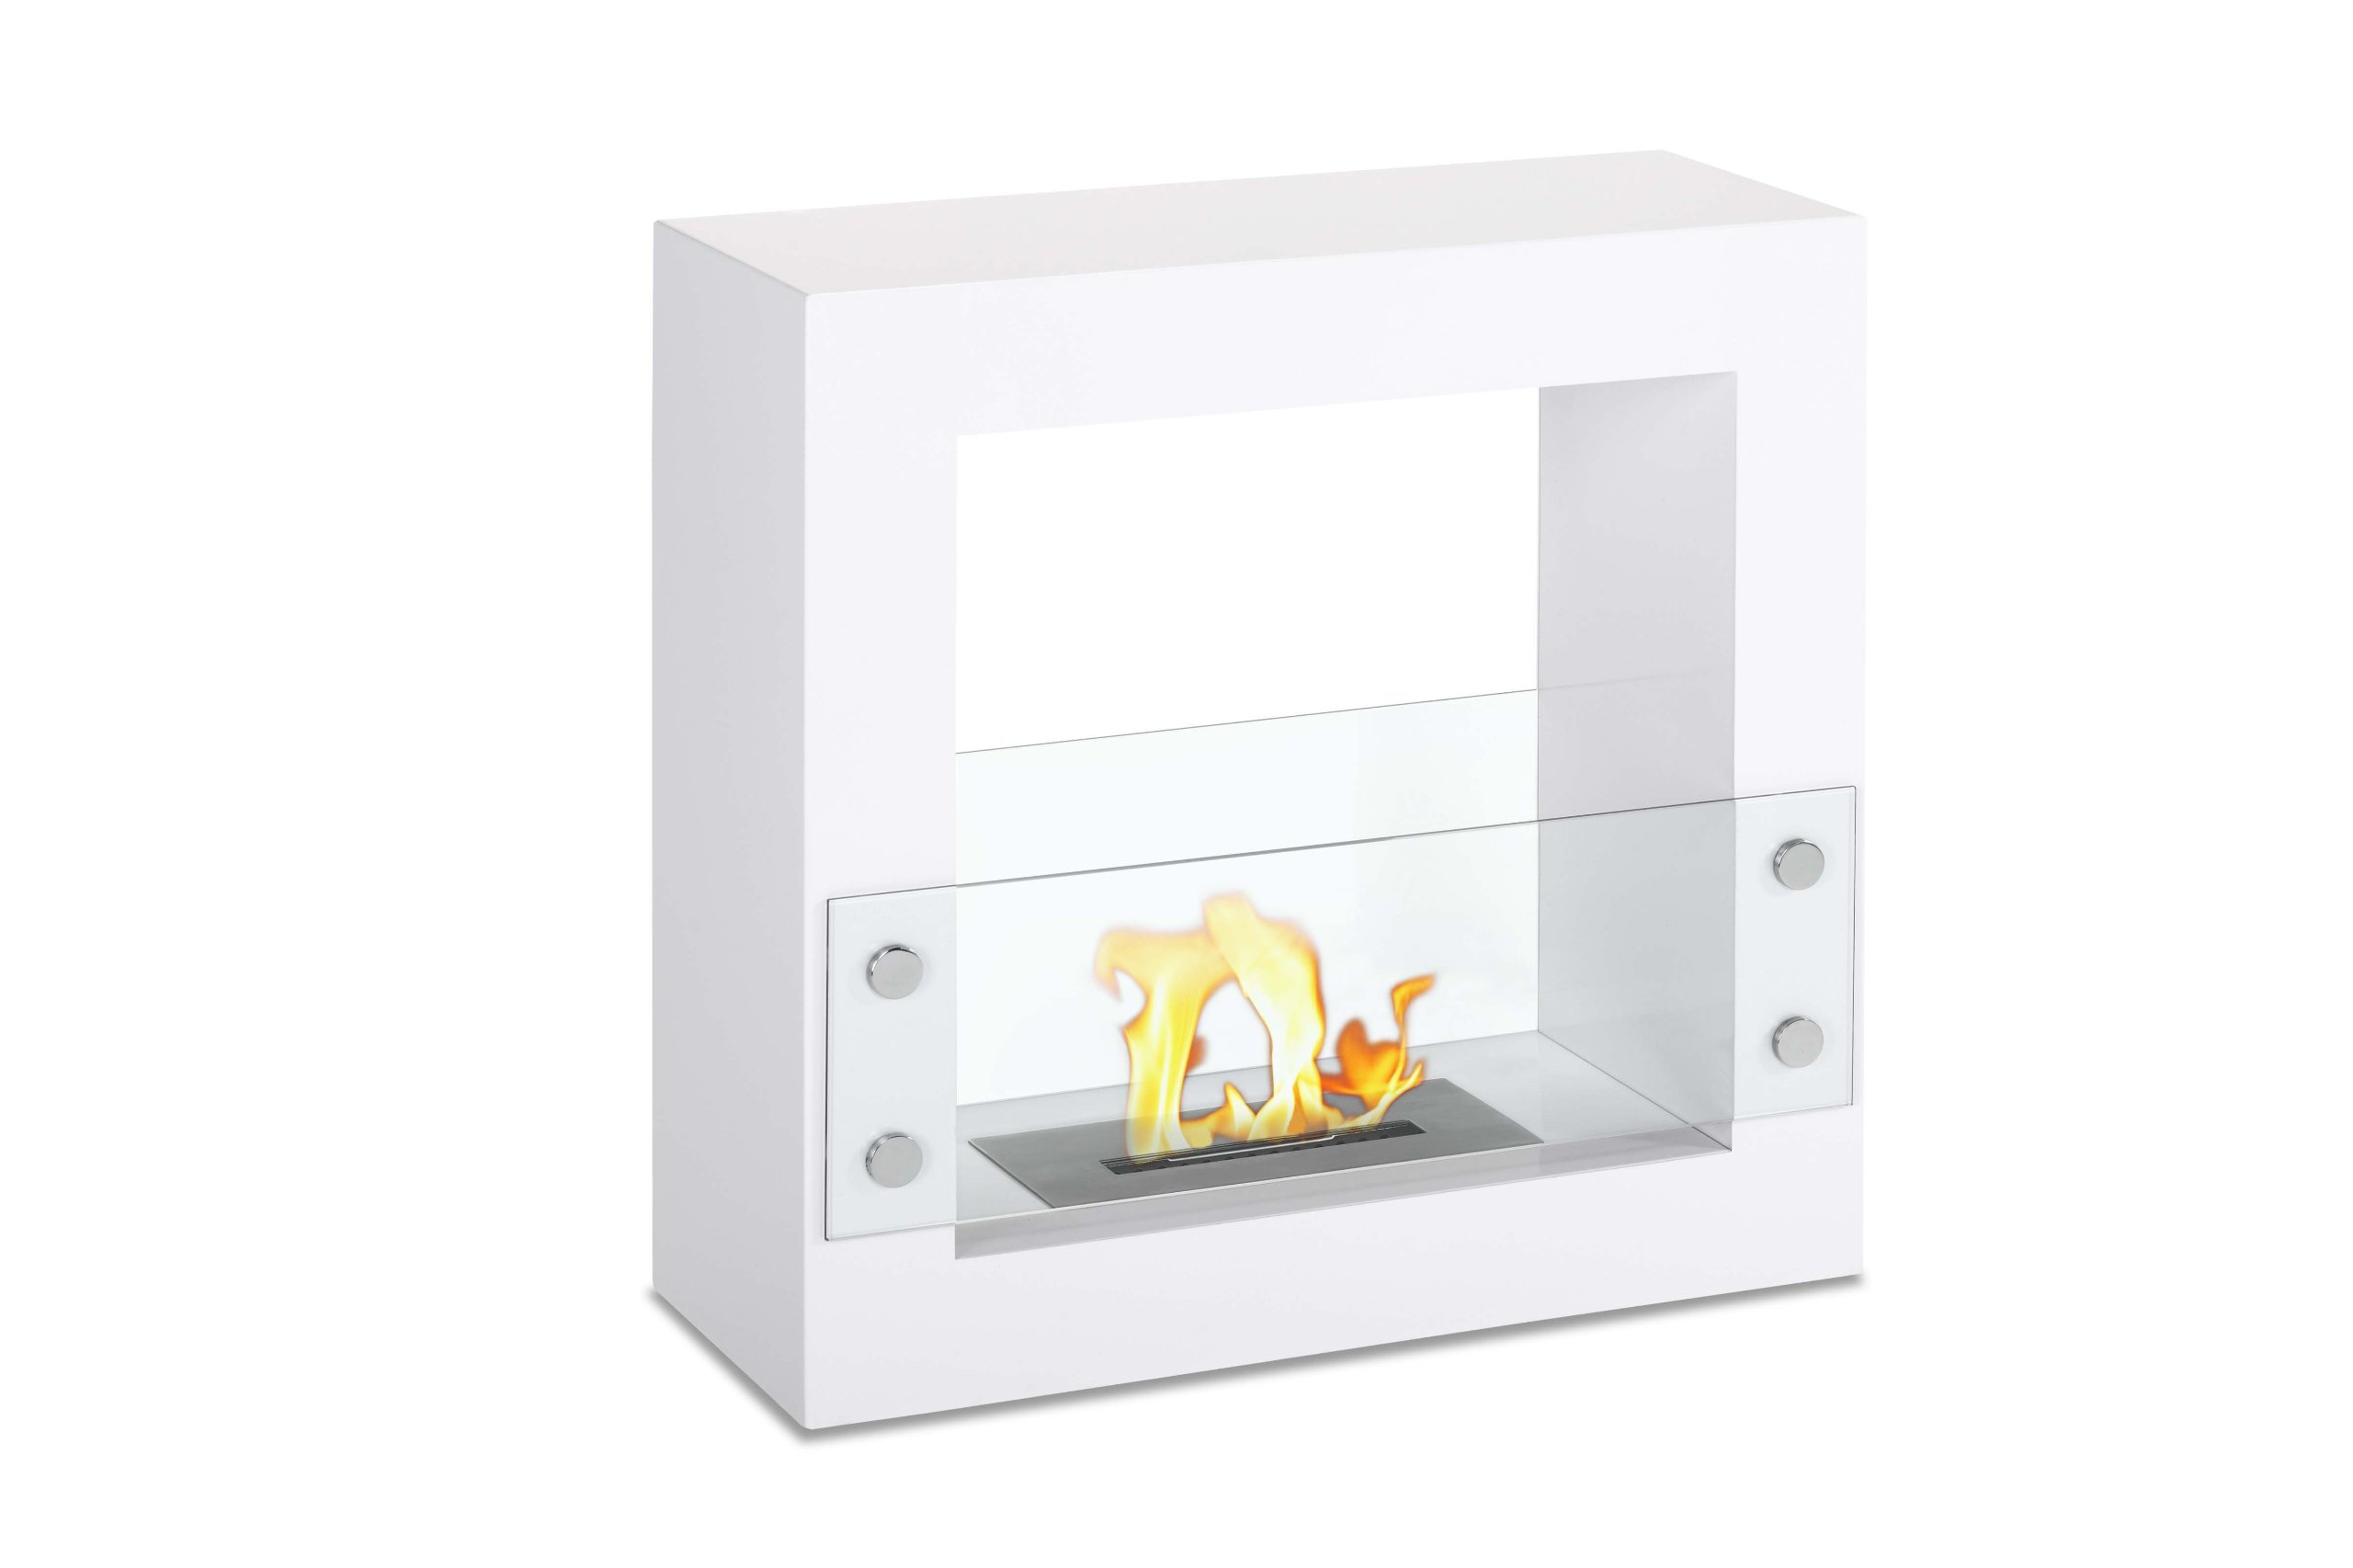 Ignis Tectum Mini White Freestanding Ventless Ethanol Fireplace by Ignis Products